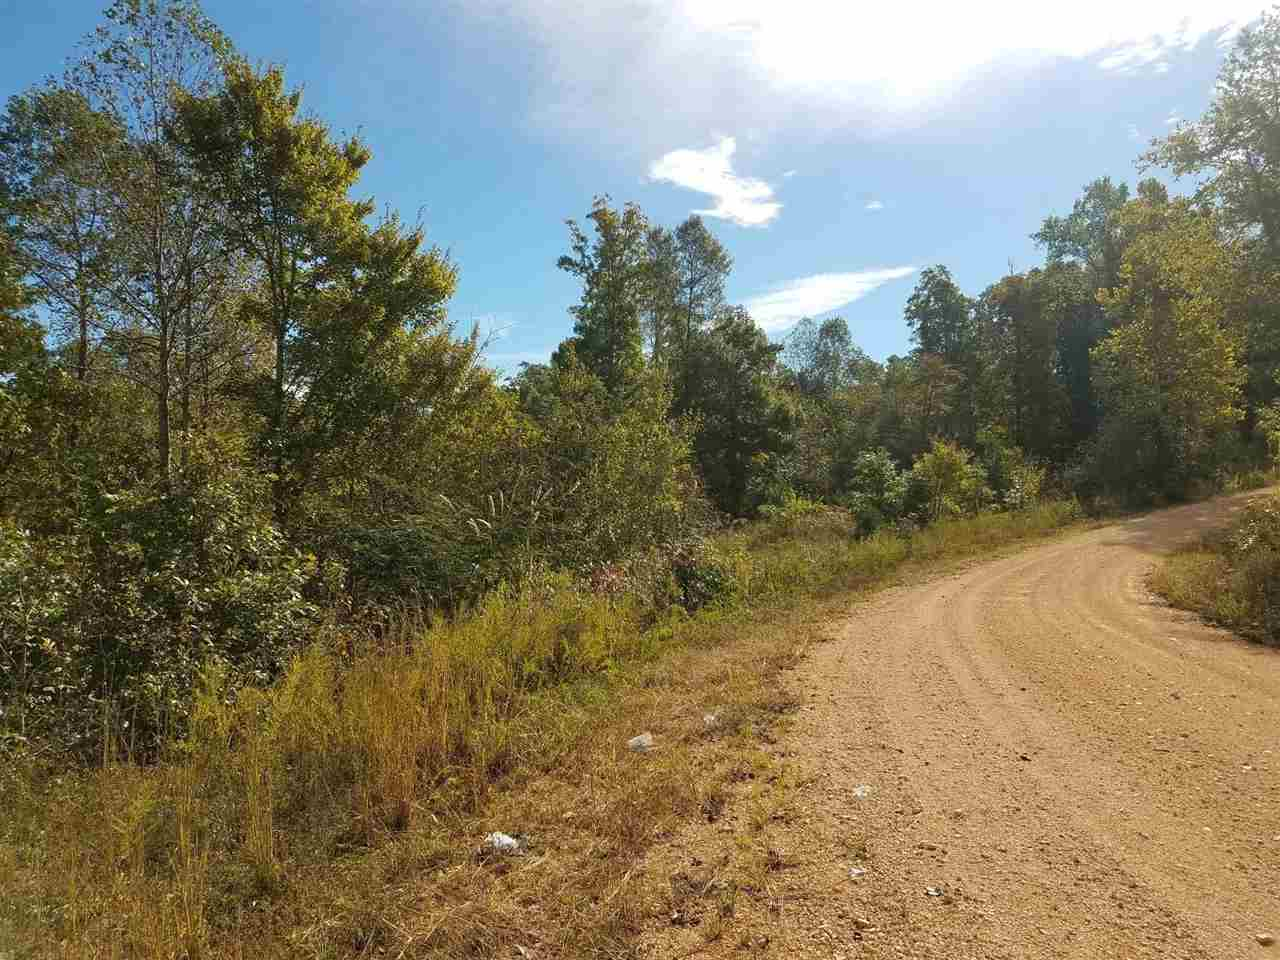 Pug Lane,Parsons,Tennessee 38363,Lots/land,Pug Lane,164100